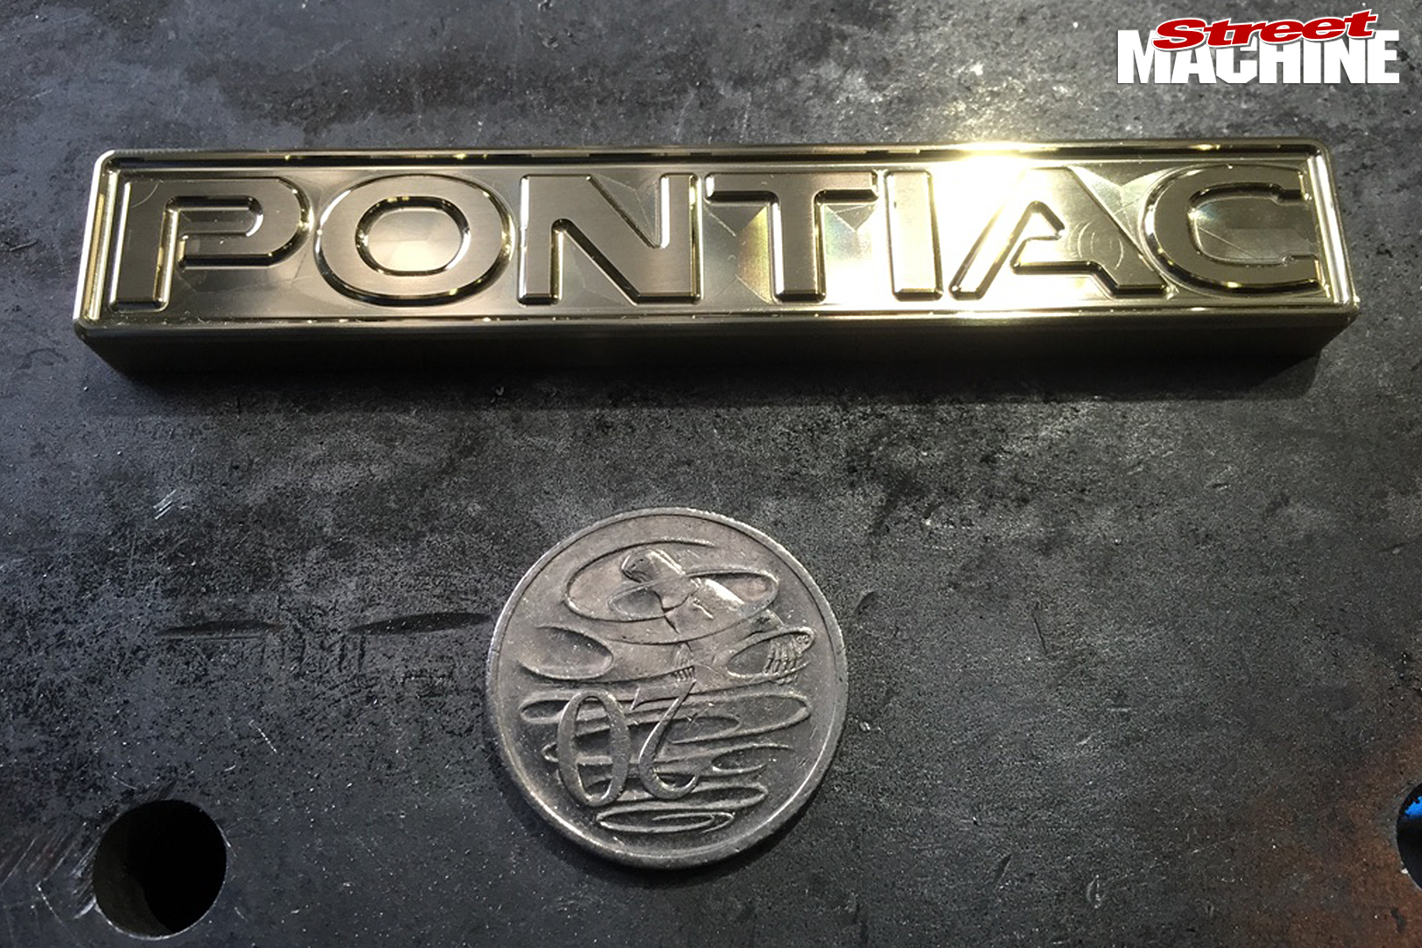 40-Pontiac -Laurentian -build -pontiac -badges